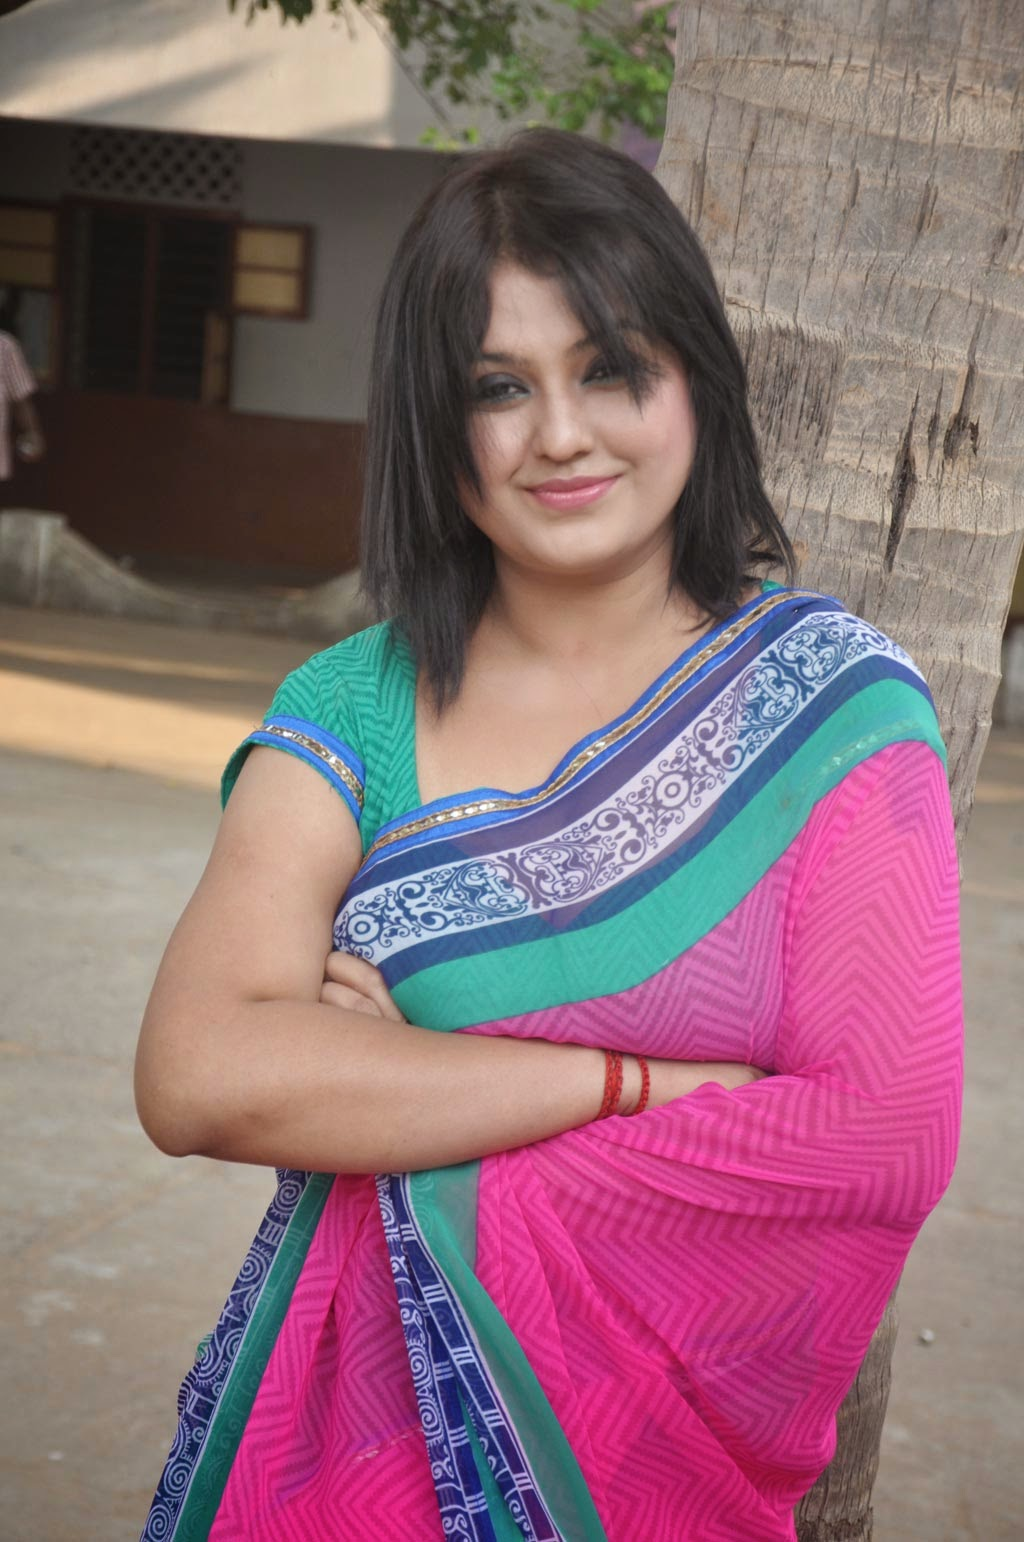 Commit Tamil actress aunty that would